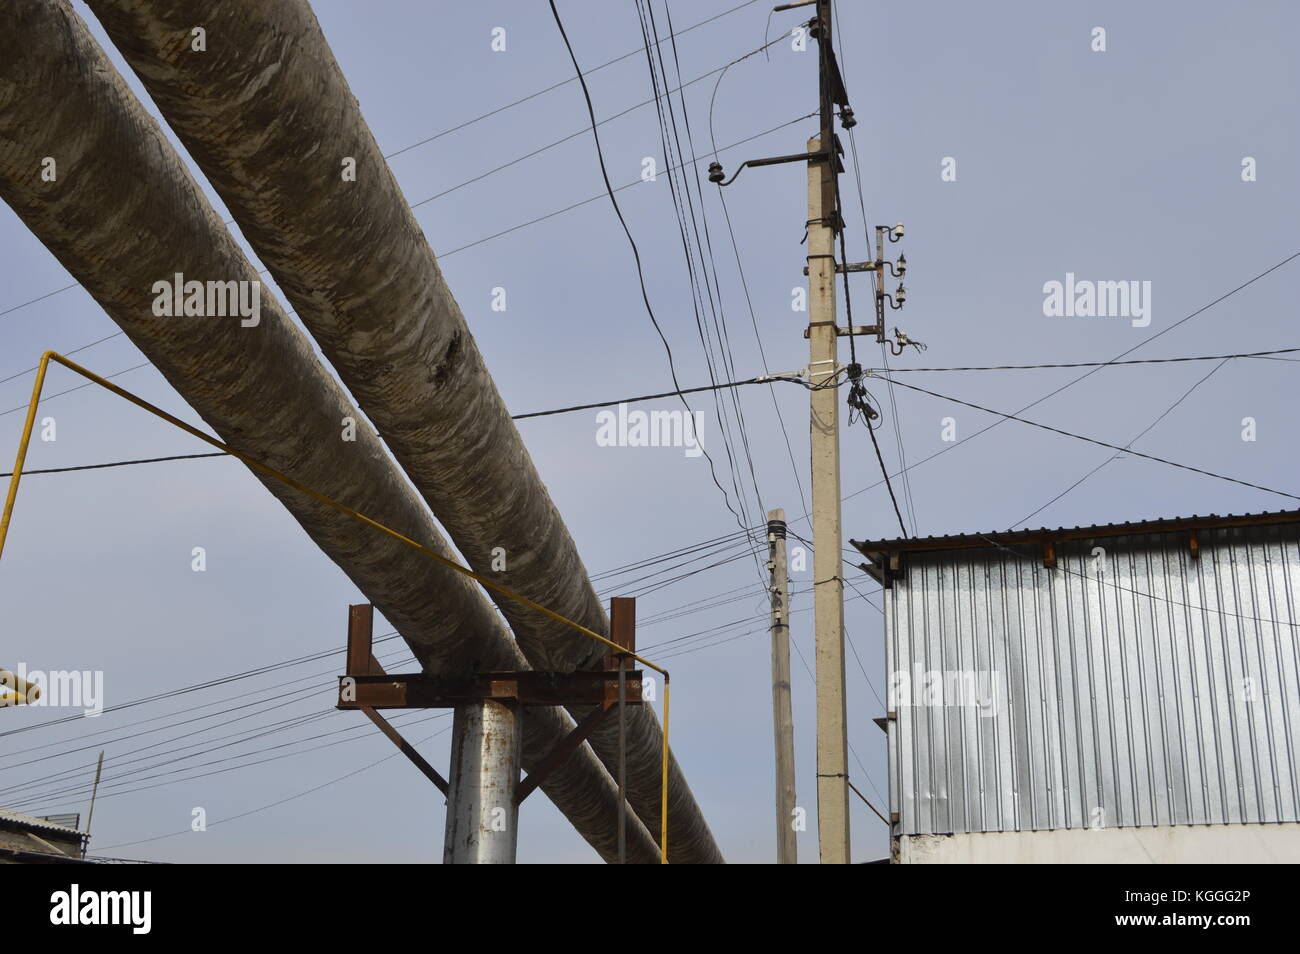 Gas pipelines, electrical wiring and other public utilities spread over all the ex Soviet countries, Kazkahstan. - Stock Image